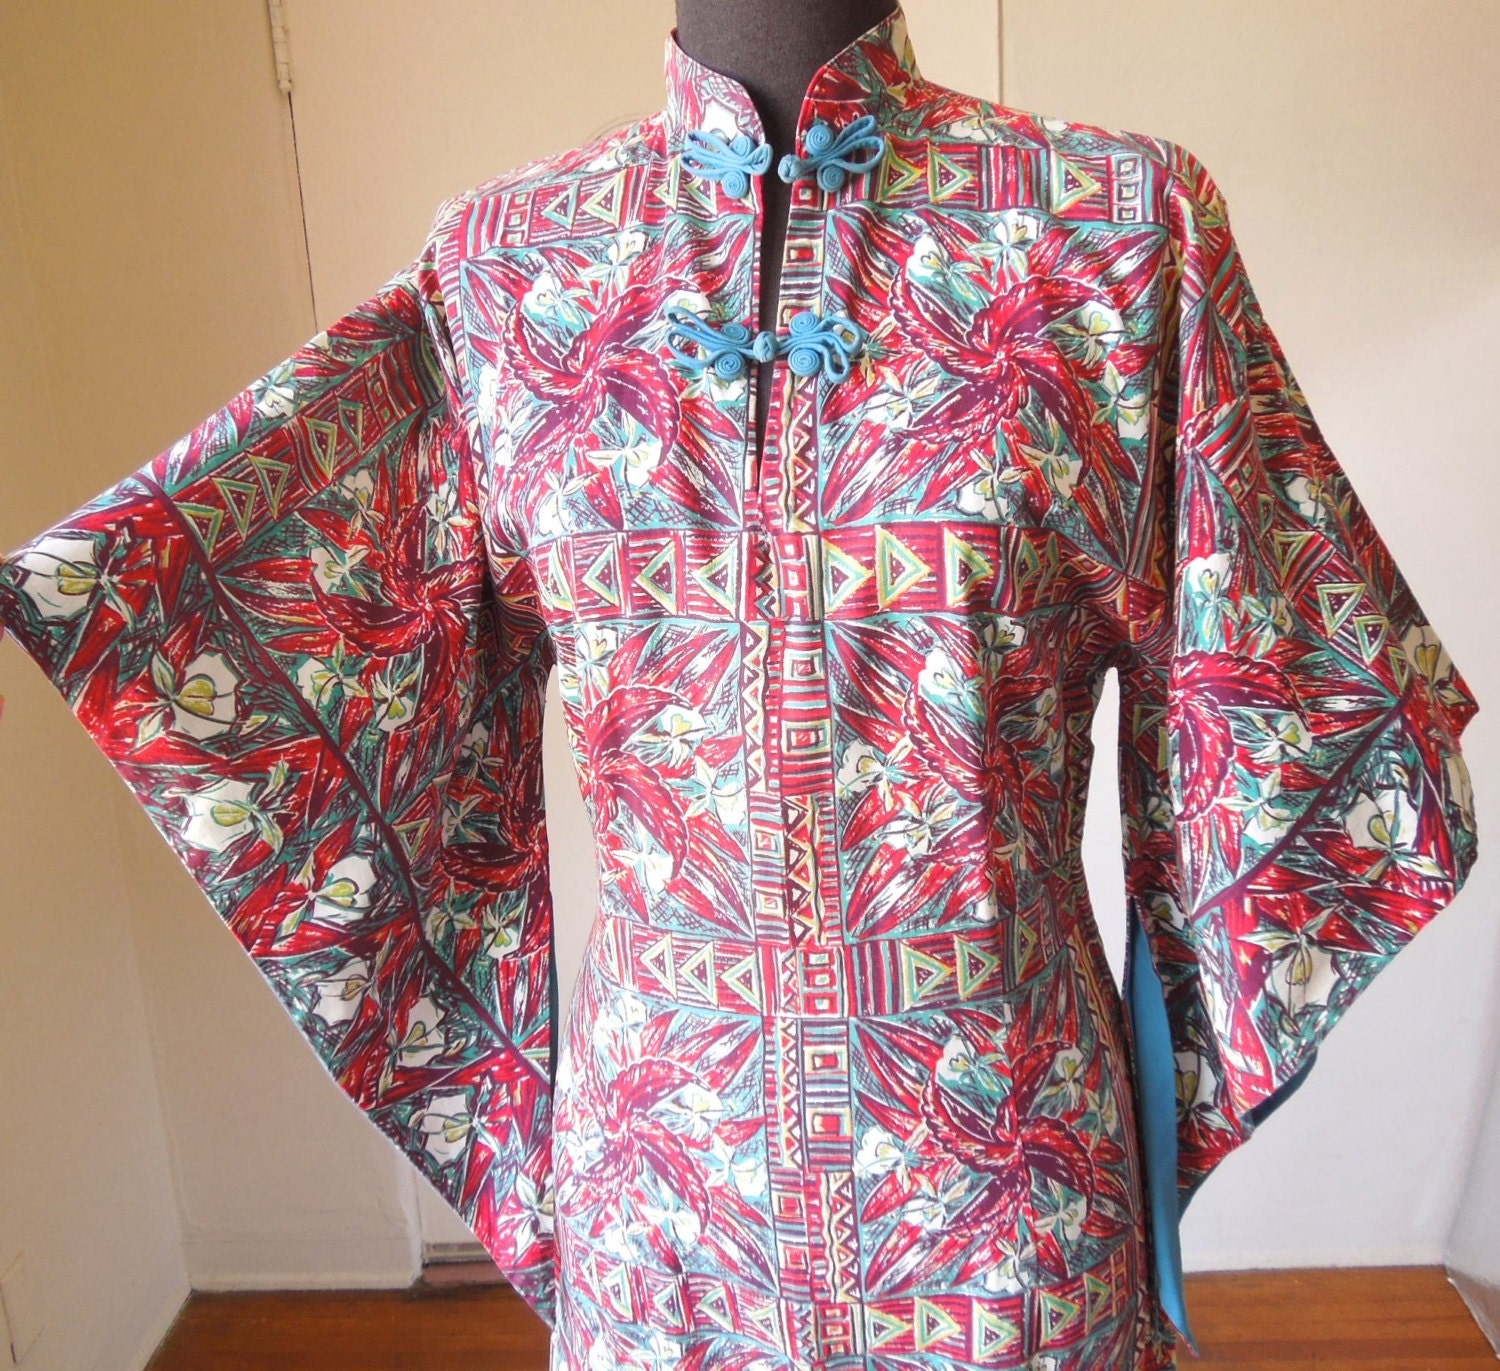 Vintage 50's Pake Mu Dress, Hawaiian, Rayon, Teal Red and White Tropical Print, By Liberty House, Rockabilly, Size Medium